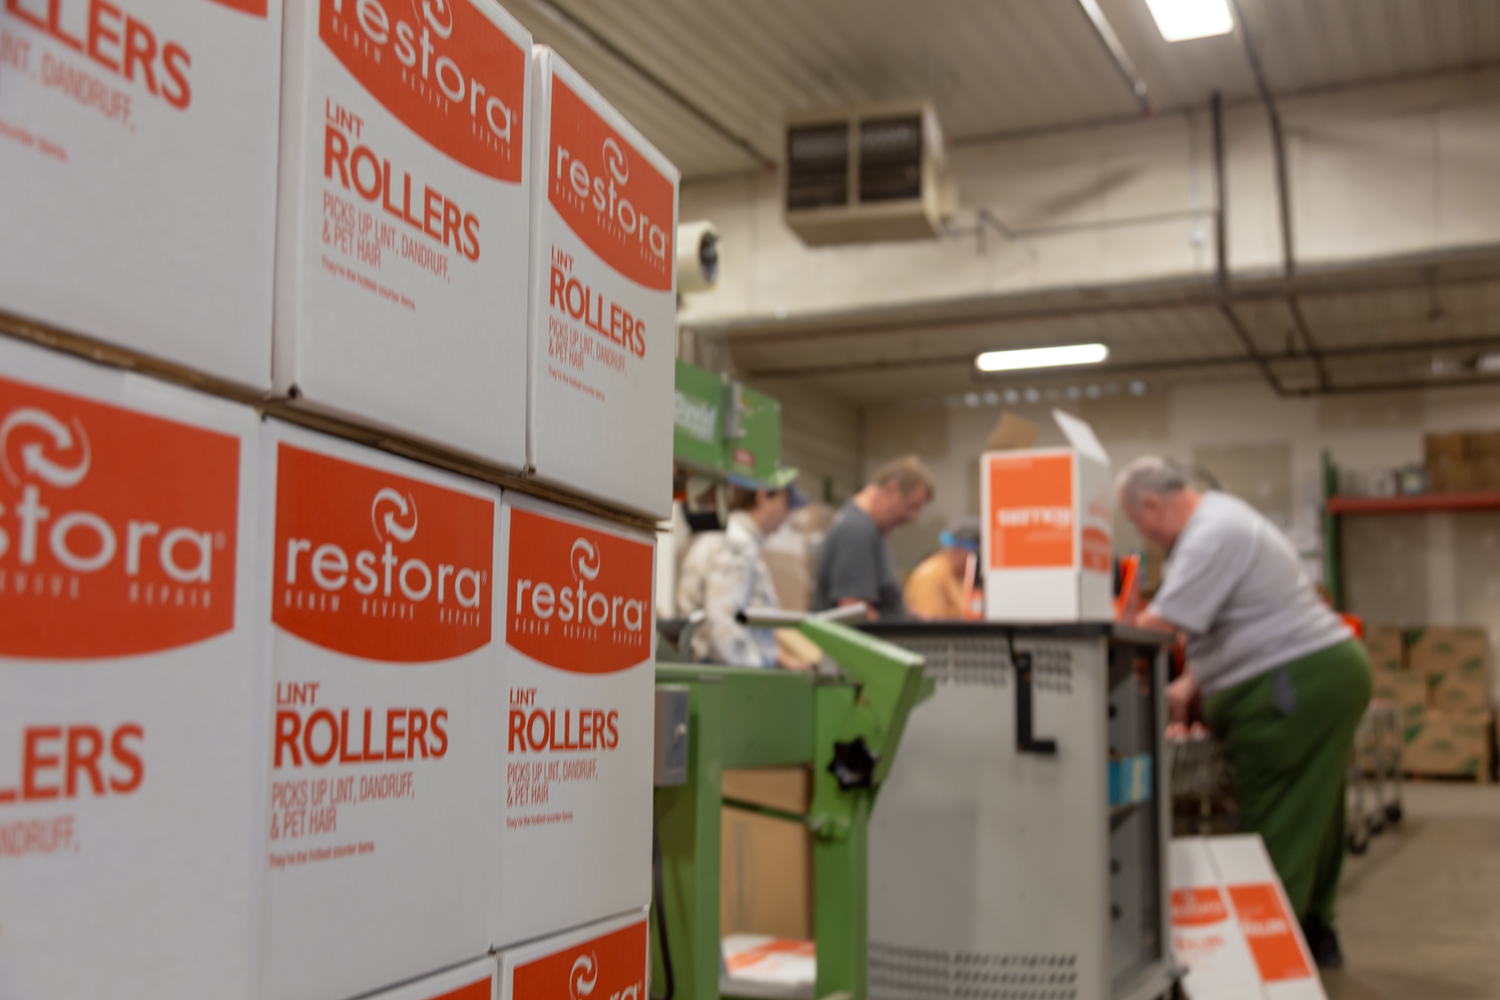 Boxes of repackaged Restora Lint Rollers at Alternatives Industry.